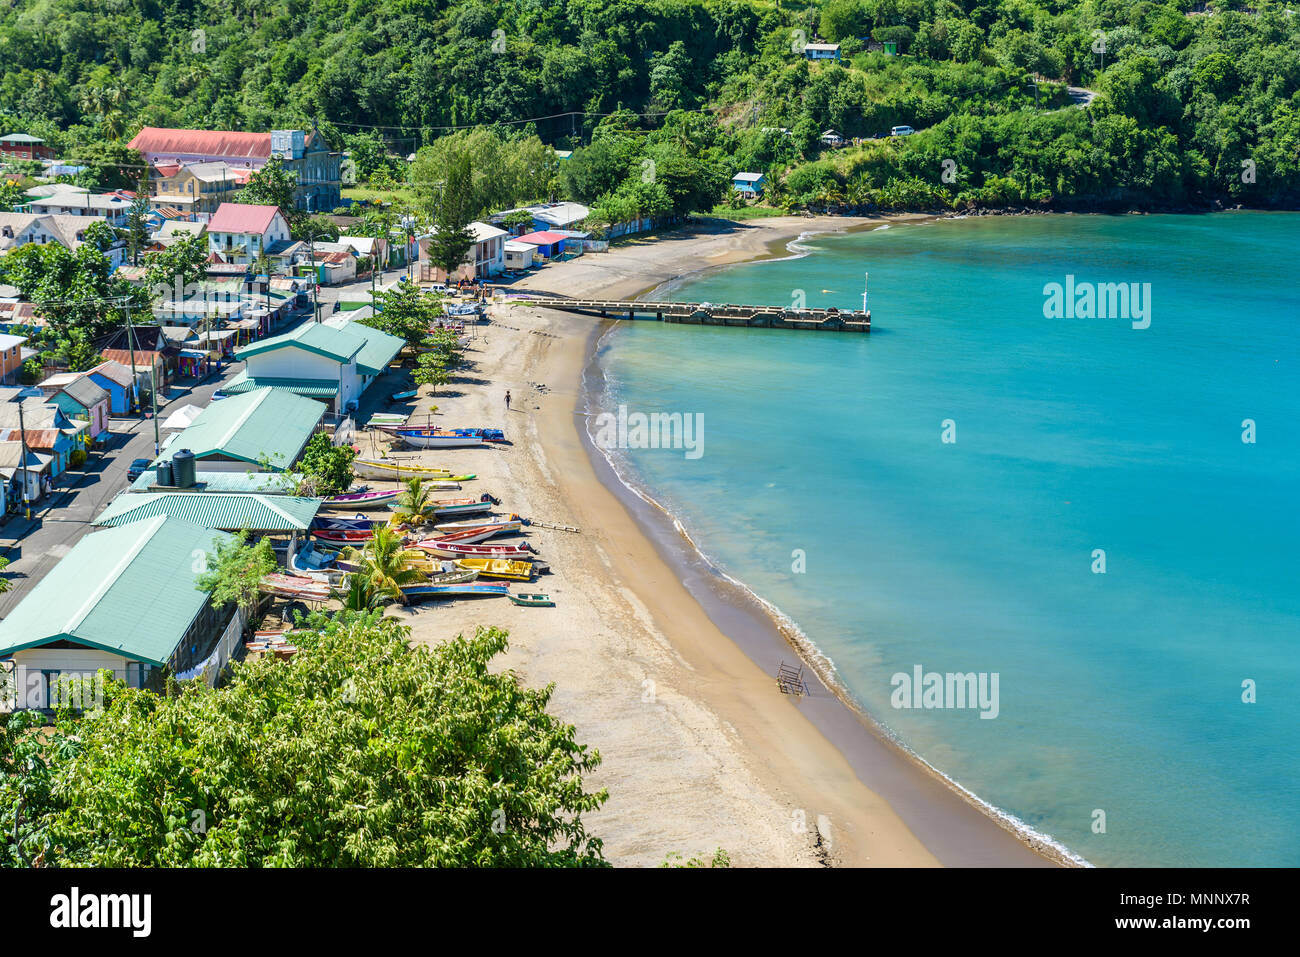 Anse la Raye - tropical beach on the Caribbean island of St. Lucia. It is a paradise destination with a white sand beach and turquoiuse sea. - Stock Image